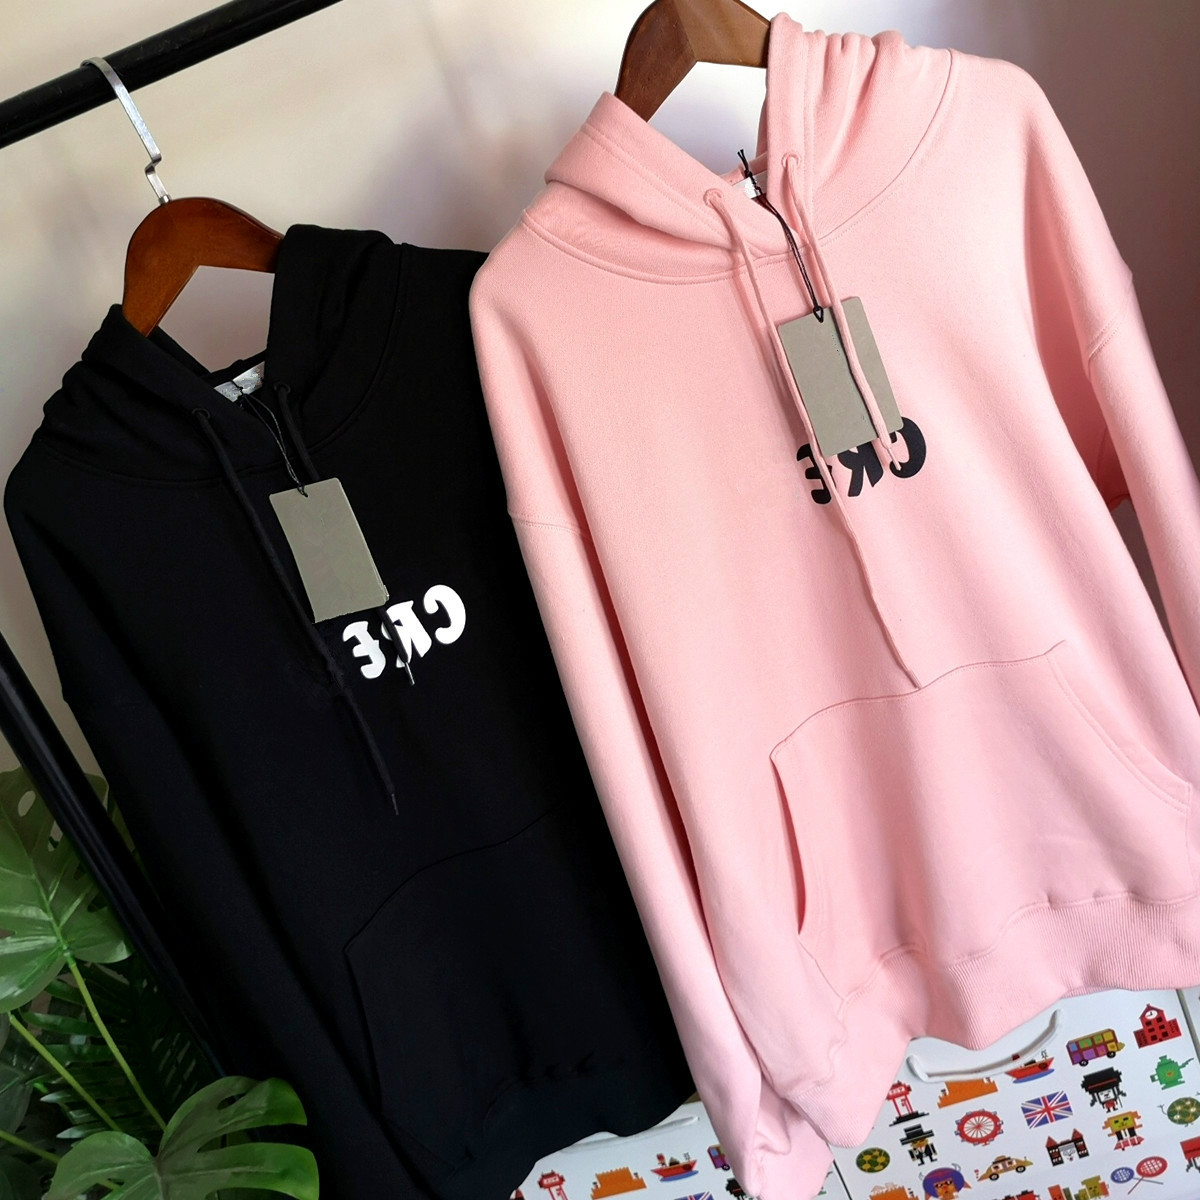 2020 New Autumn Winter Pink Black Couple's Versatile Lettering Printing Casual Long Sleeves Hooded Women Men Hoodies Fashion 1